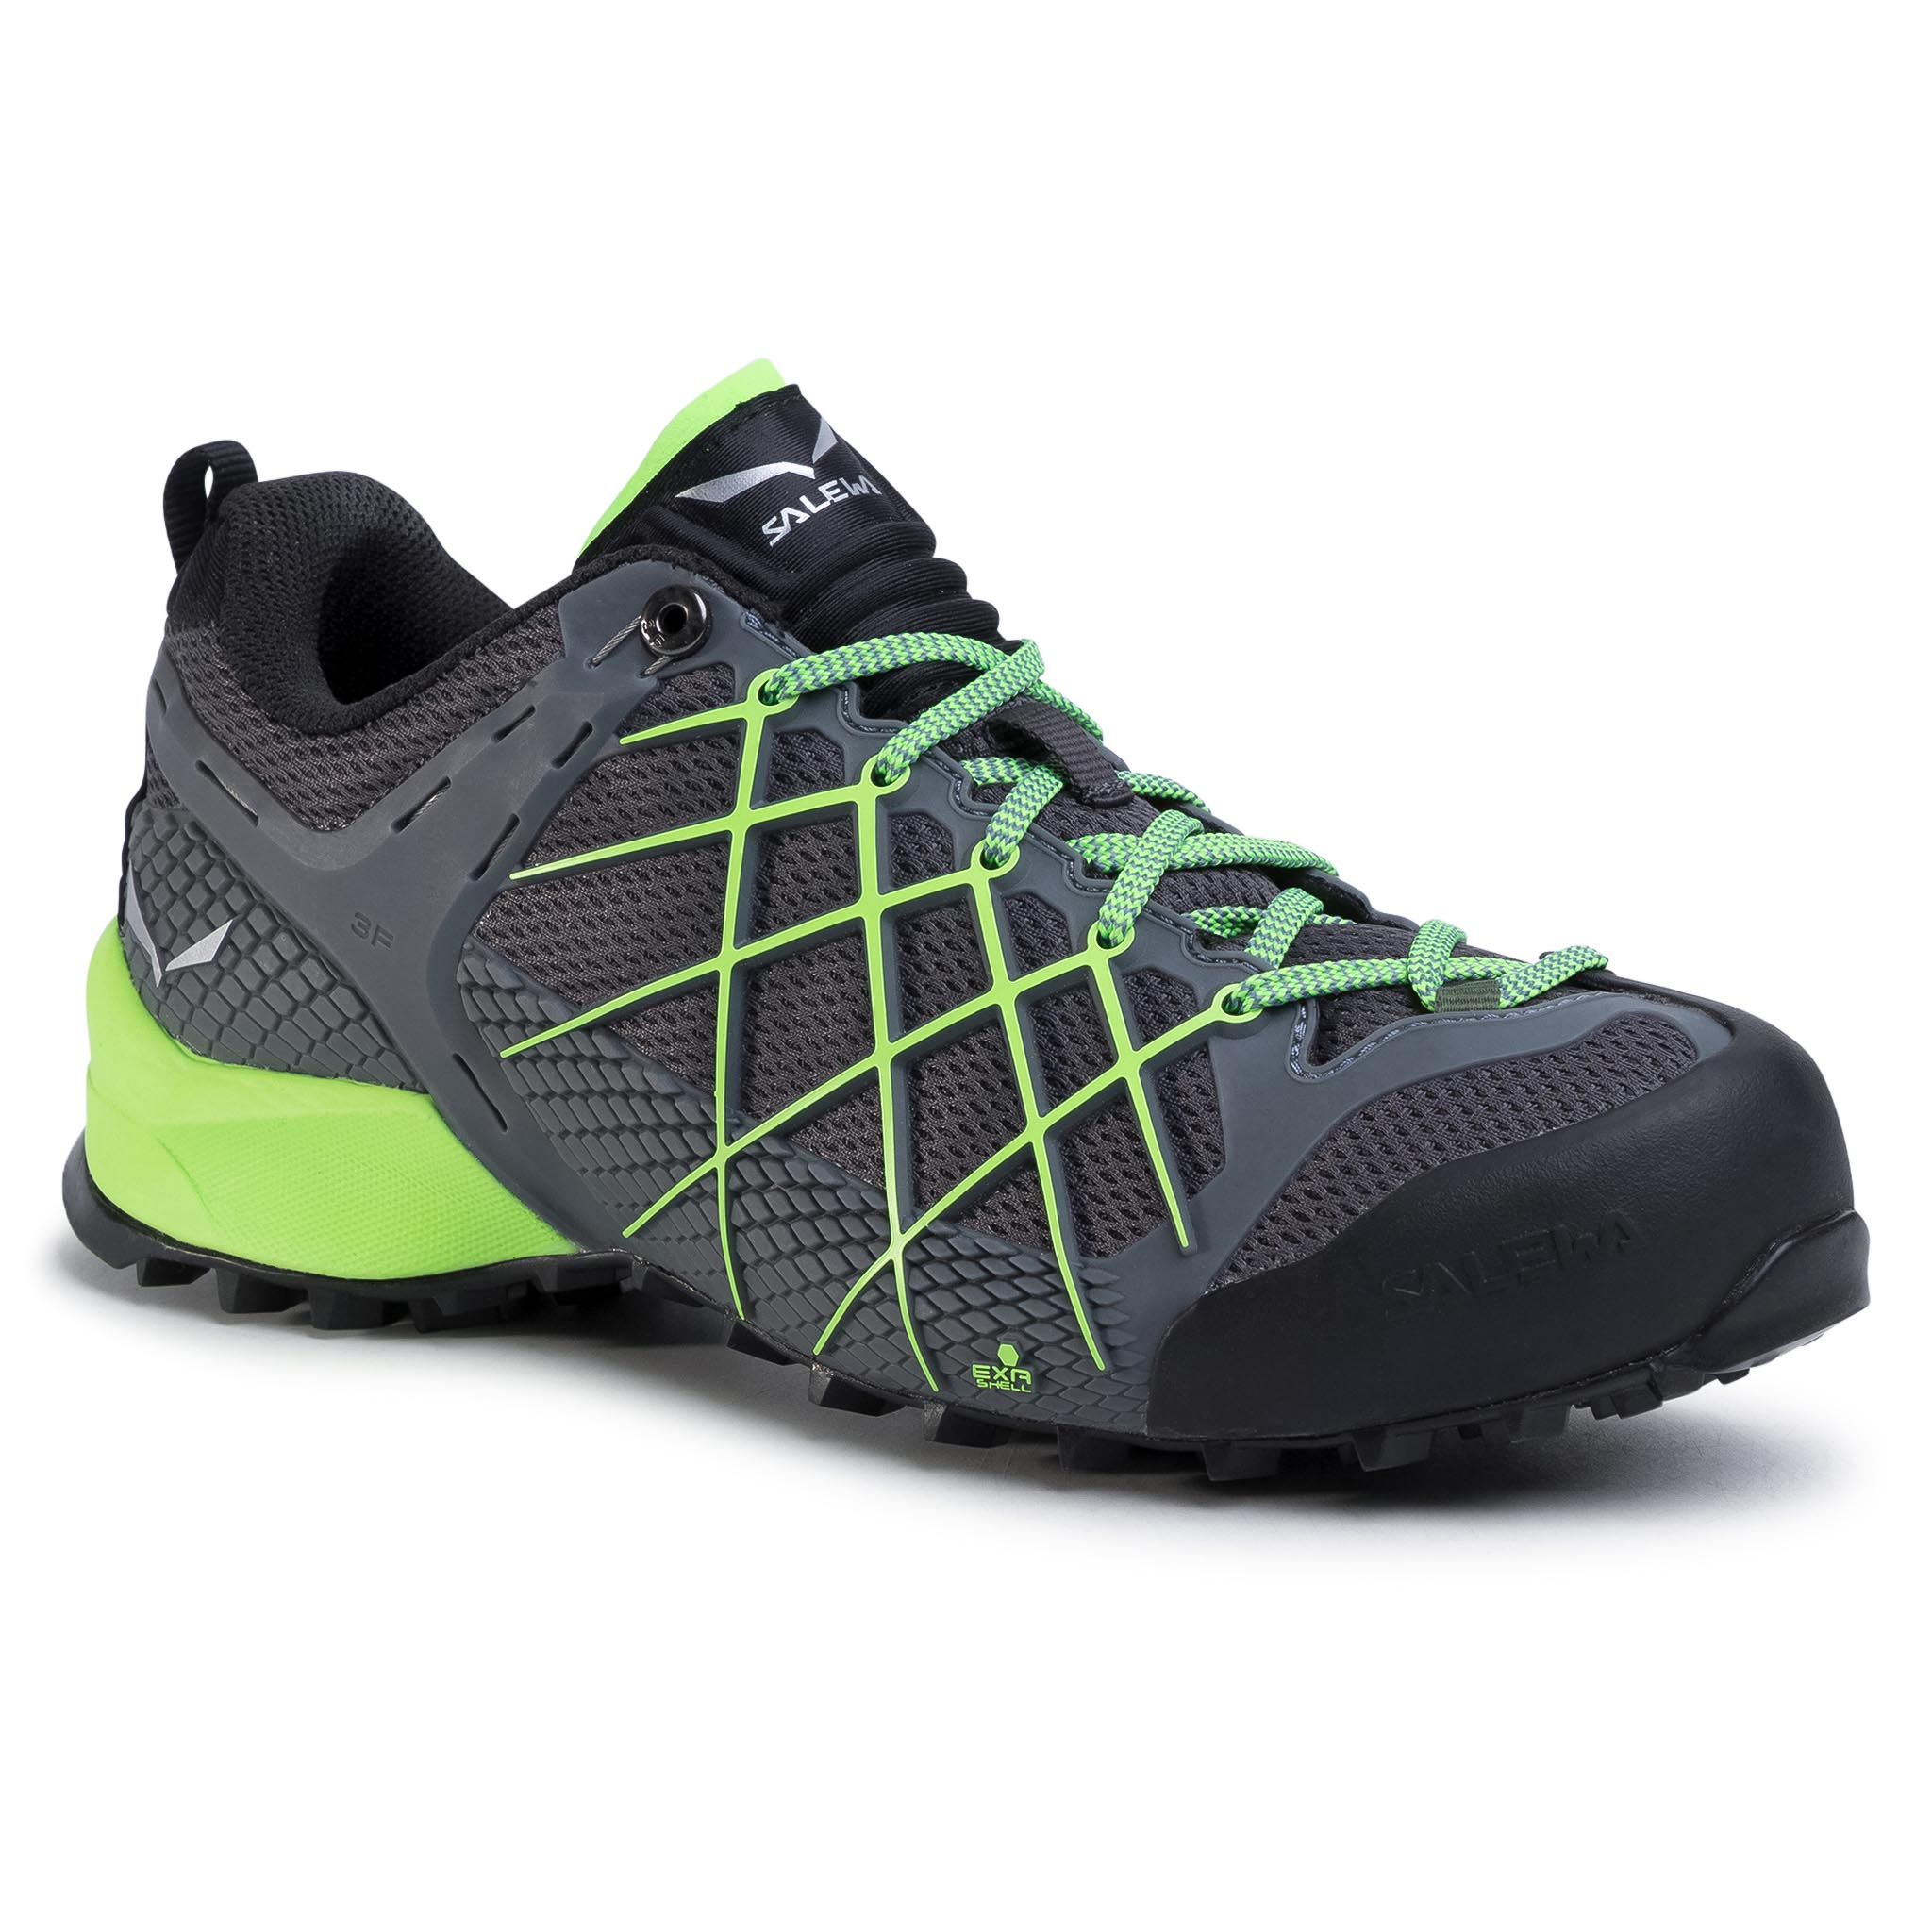 Trekkings Salewa - Ms Wildfire 63485-7450 Flintstone/Fluo imagine epantofi.ro 2021